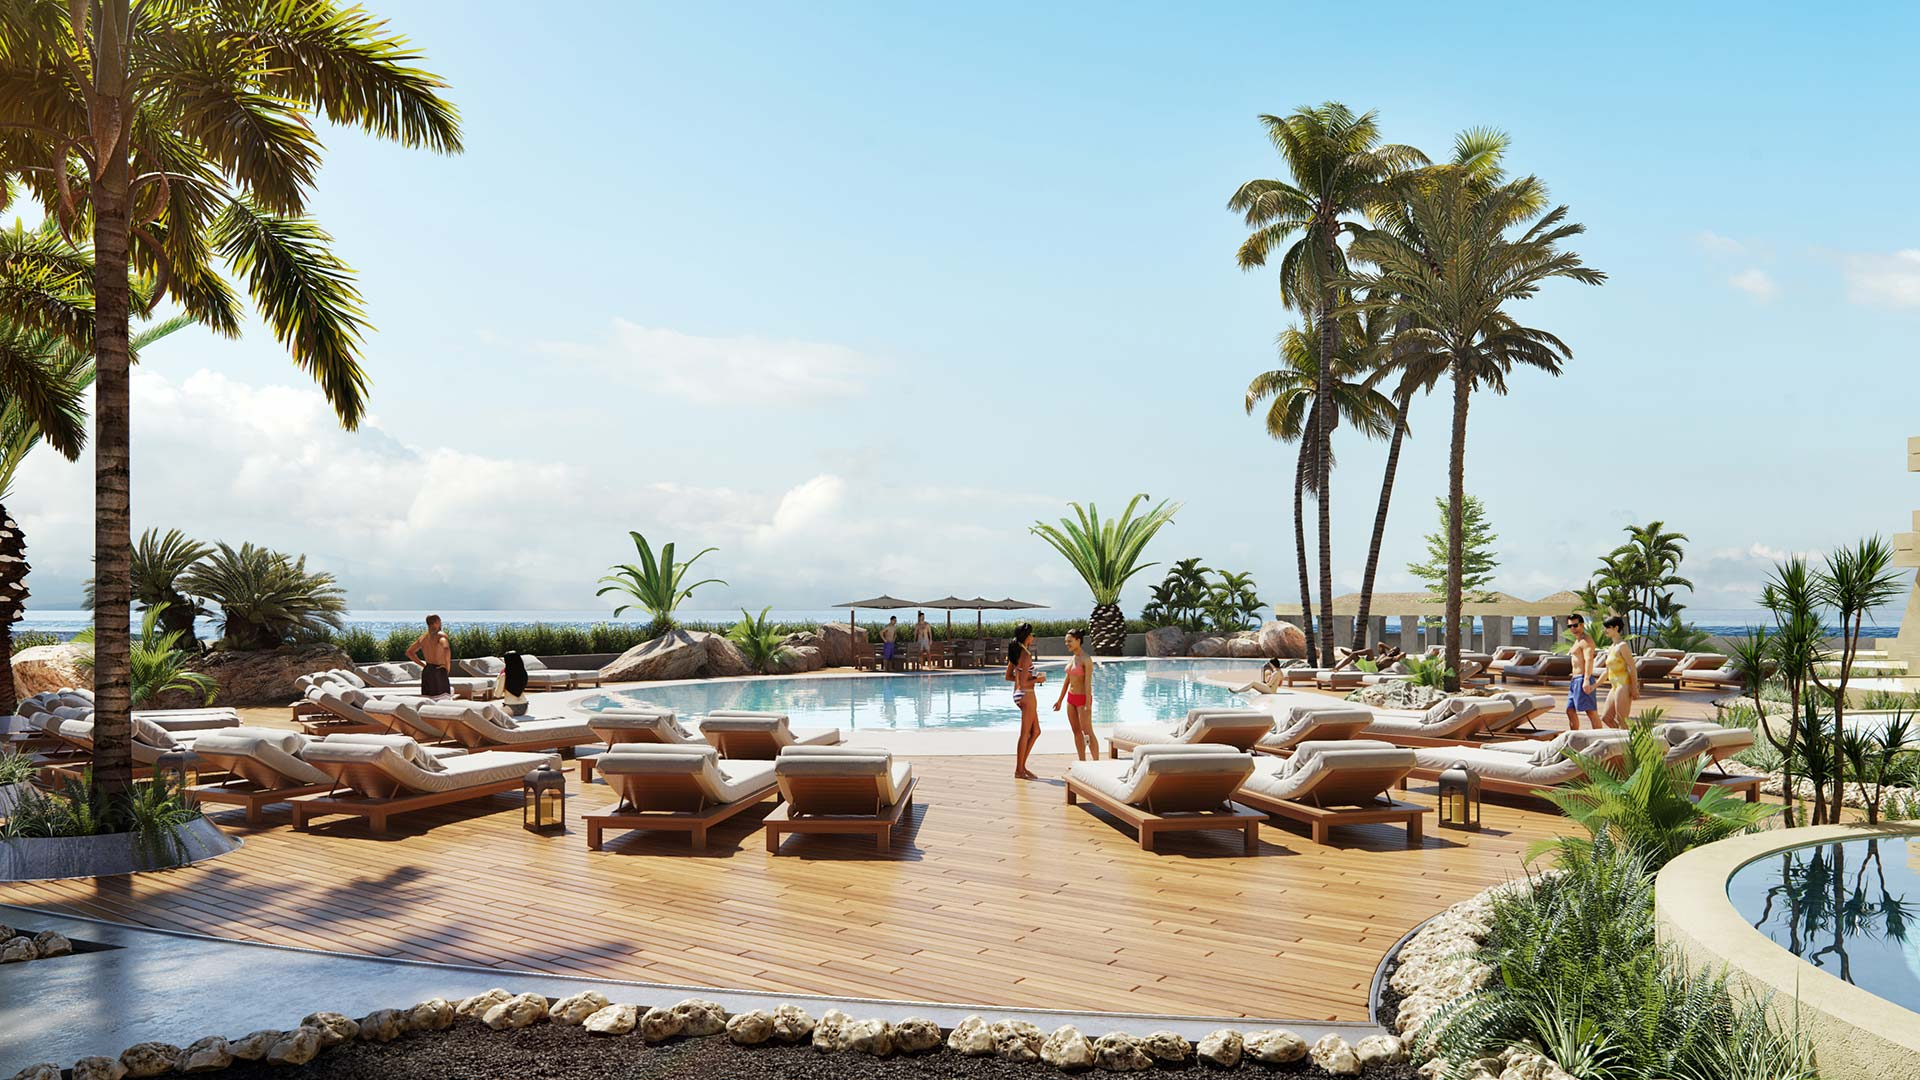 Hotel Pool by the Ocean - 3D Rendering